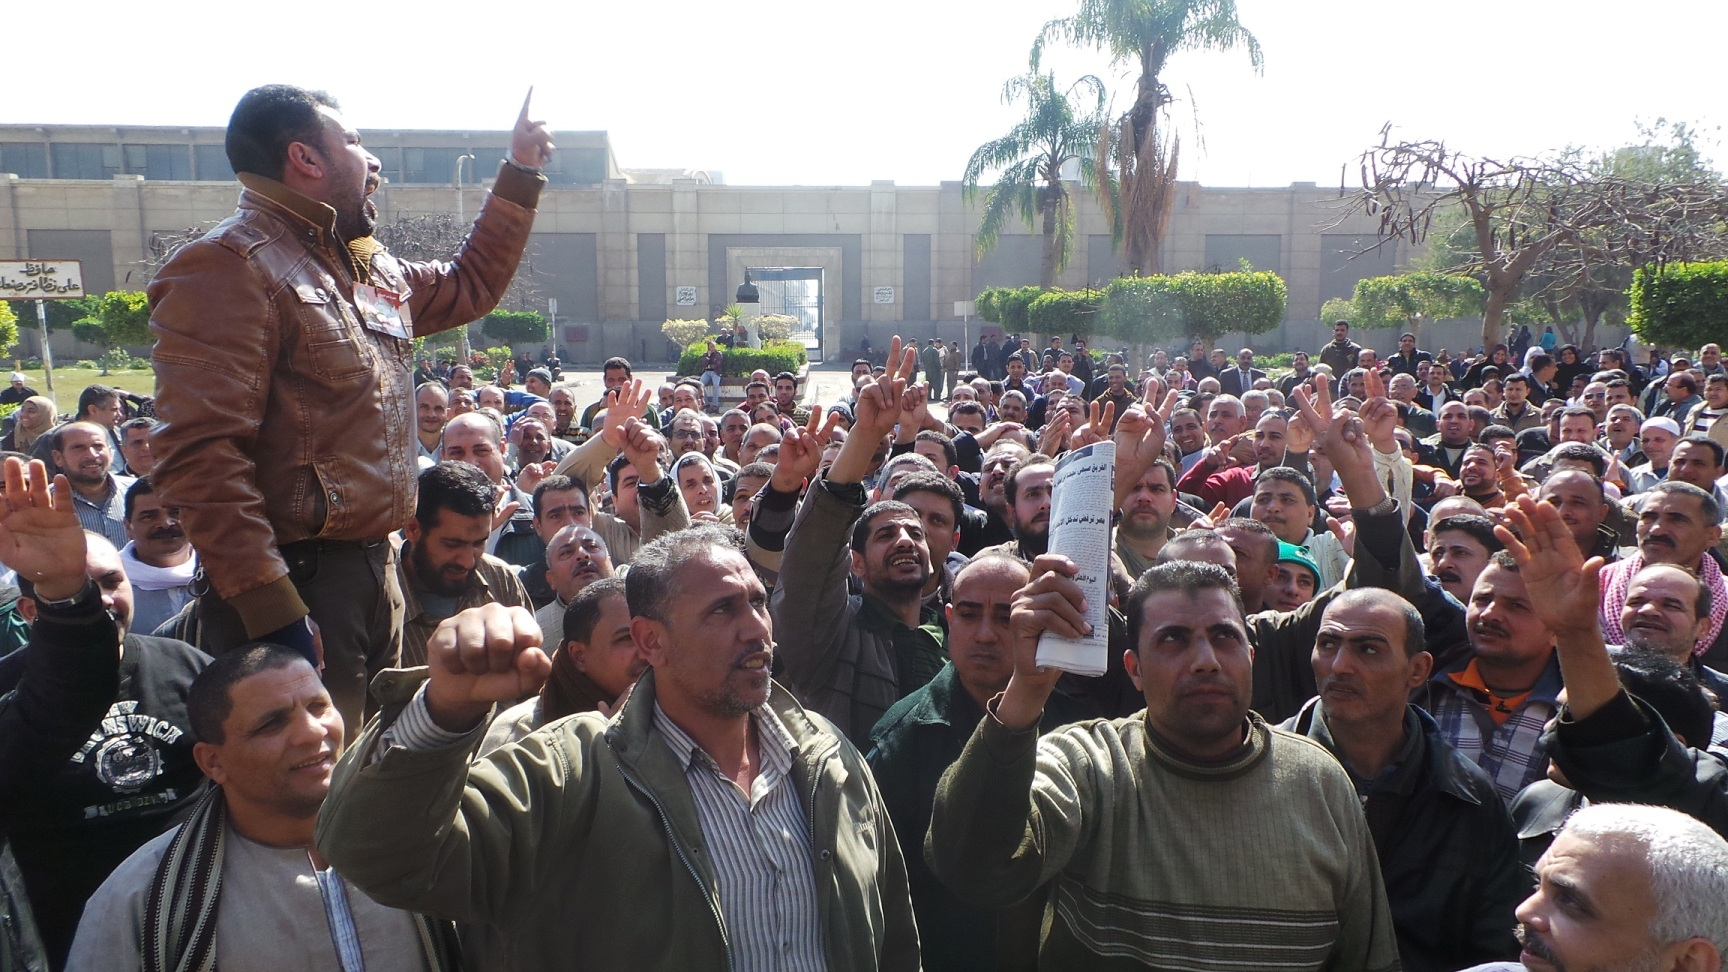 Mahalla Weaving Company workers strike on 11 February, demanding minimum wage. The governmnet Wednesday said only administrative employees qualify for the plan.  (Photo from Aswat Mareya)